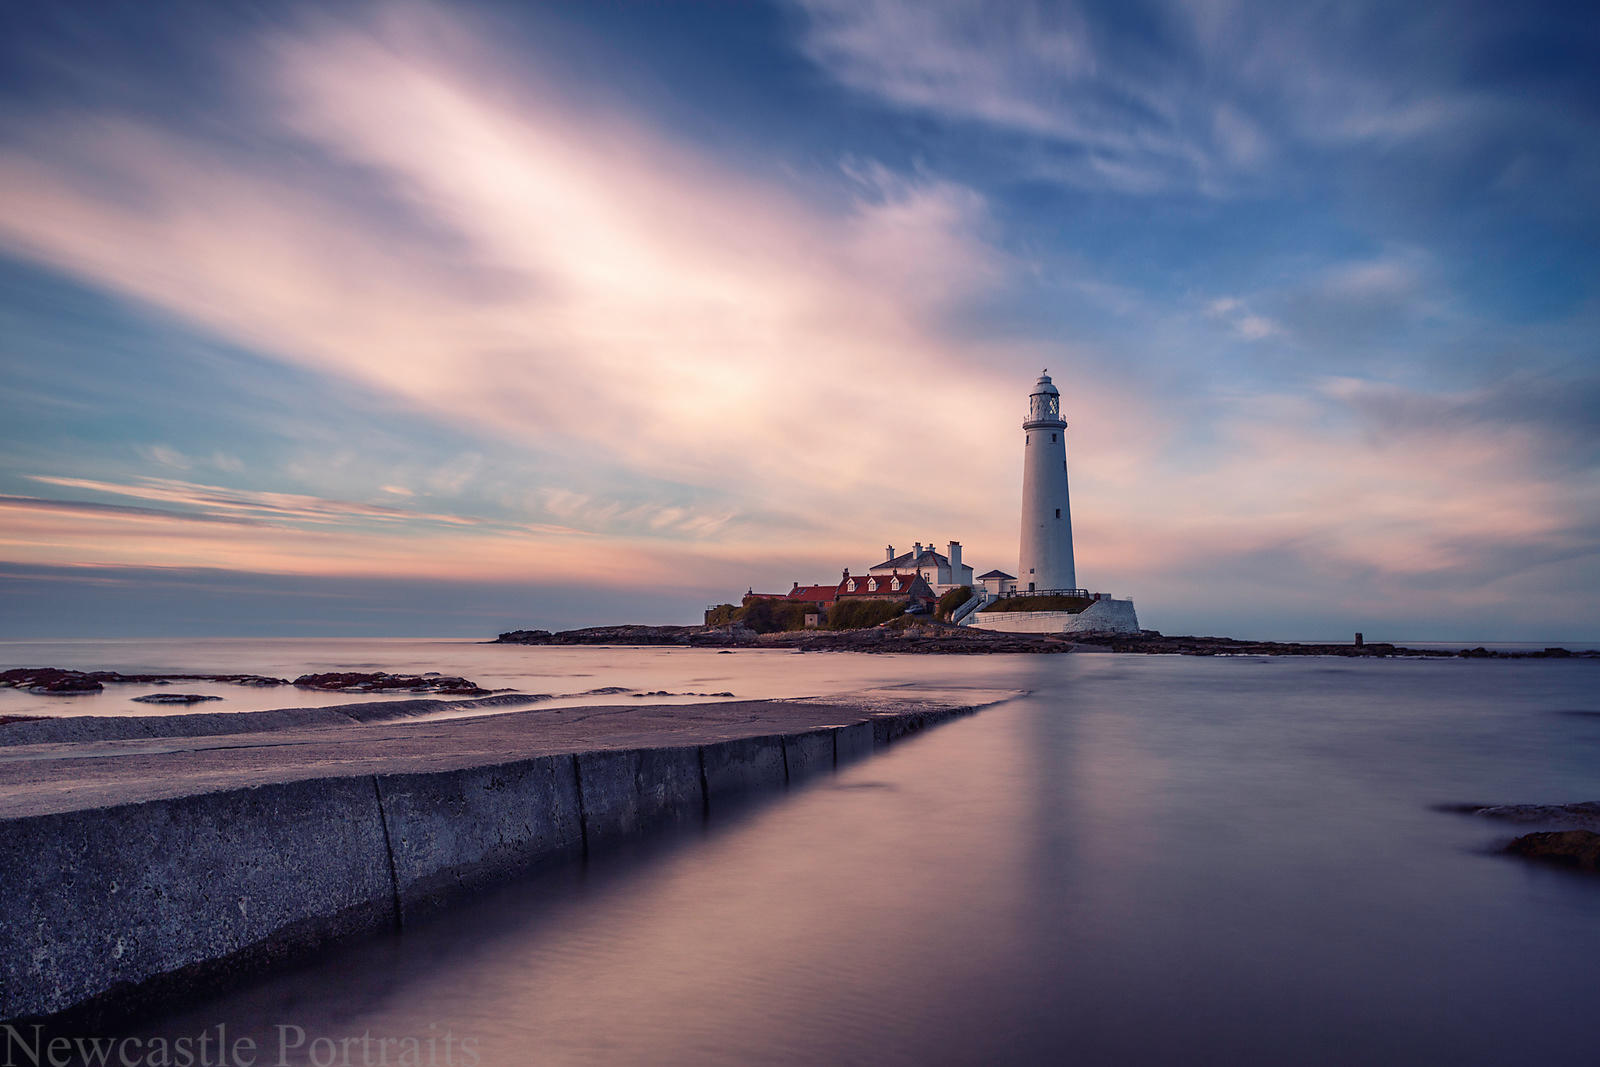 St. Mary's Lighthouse